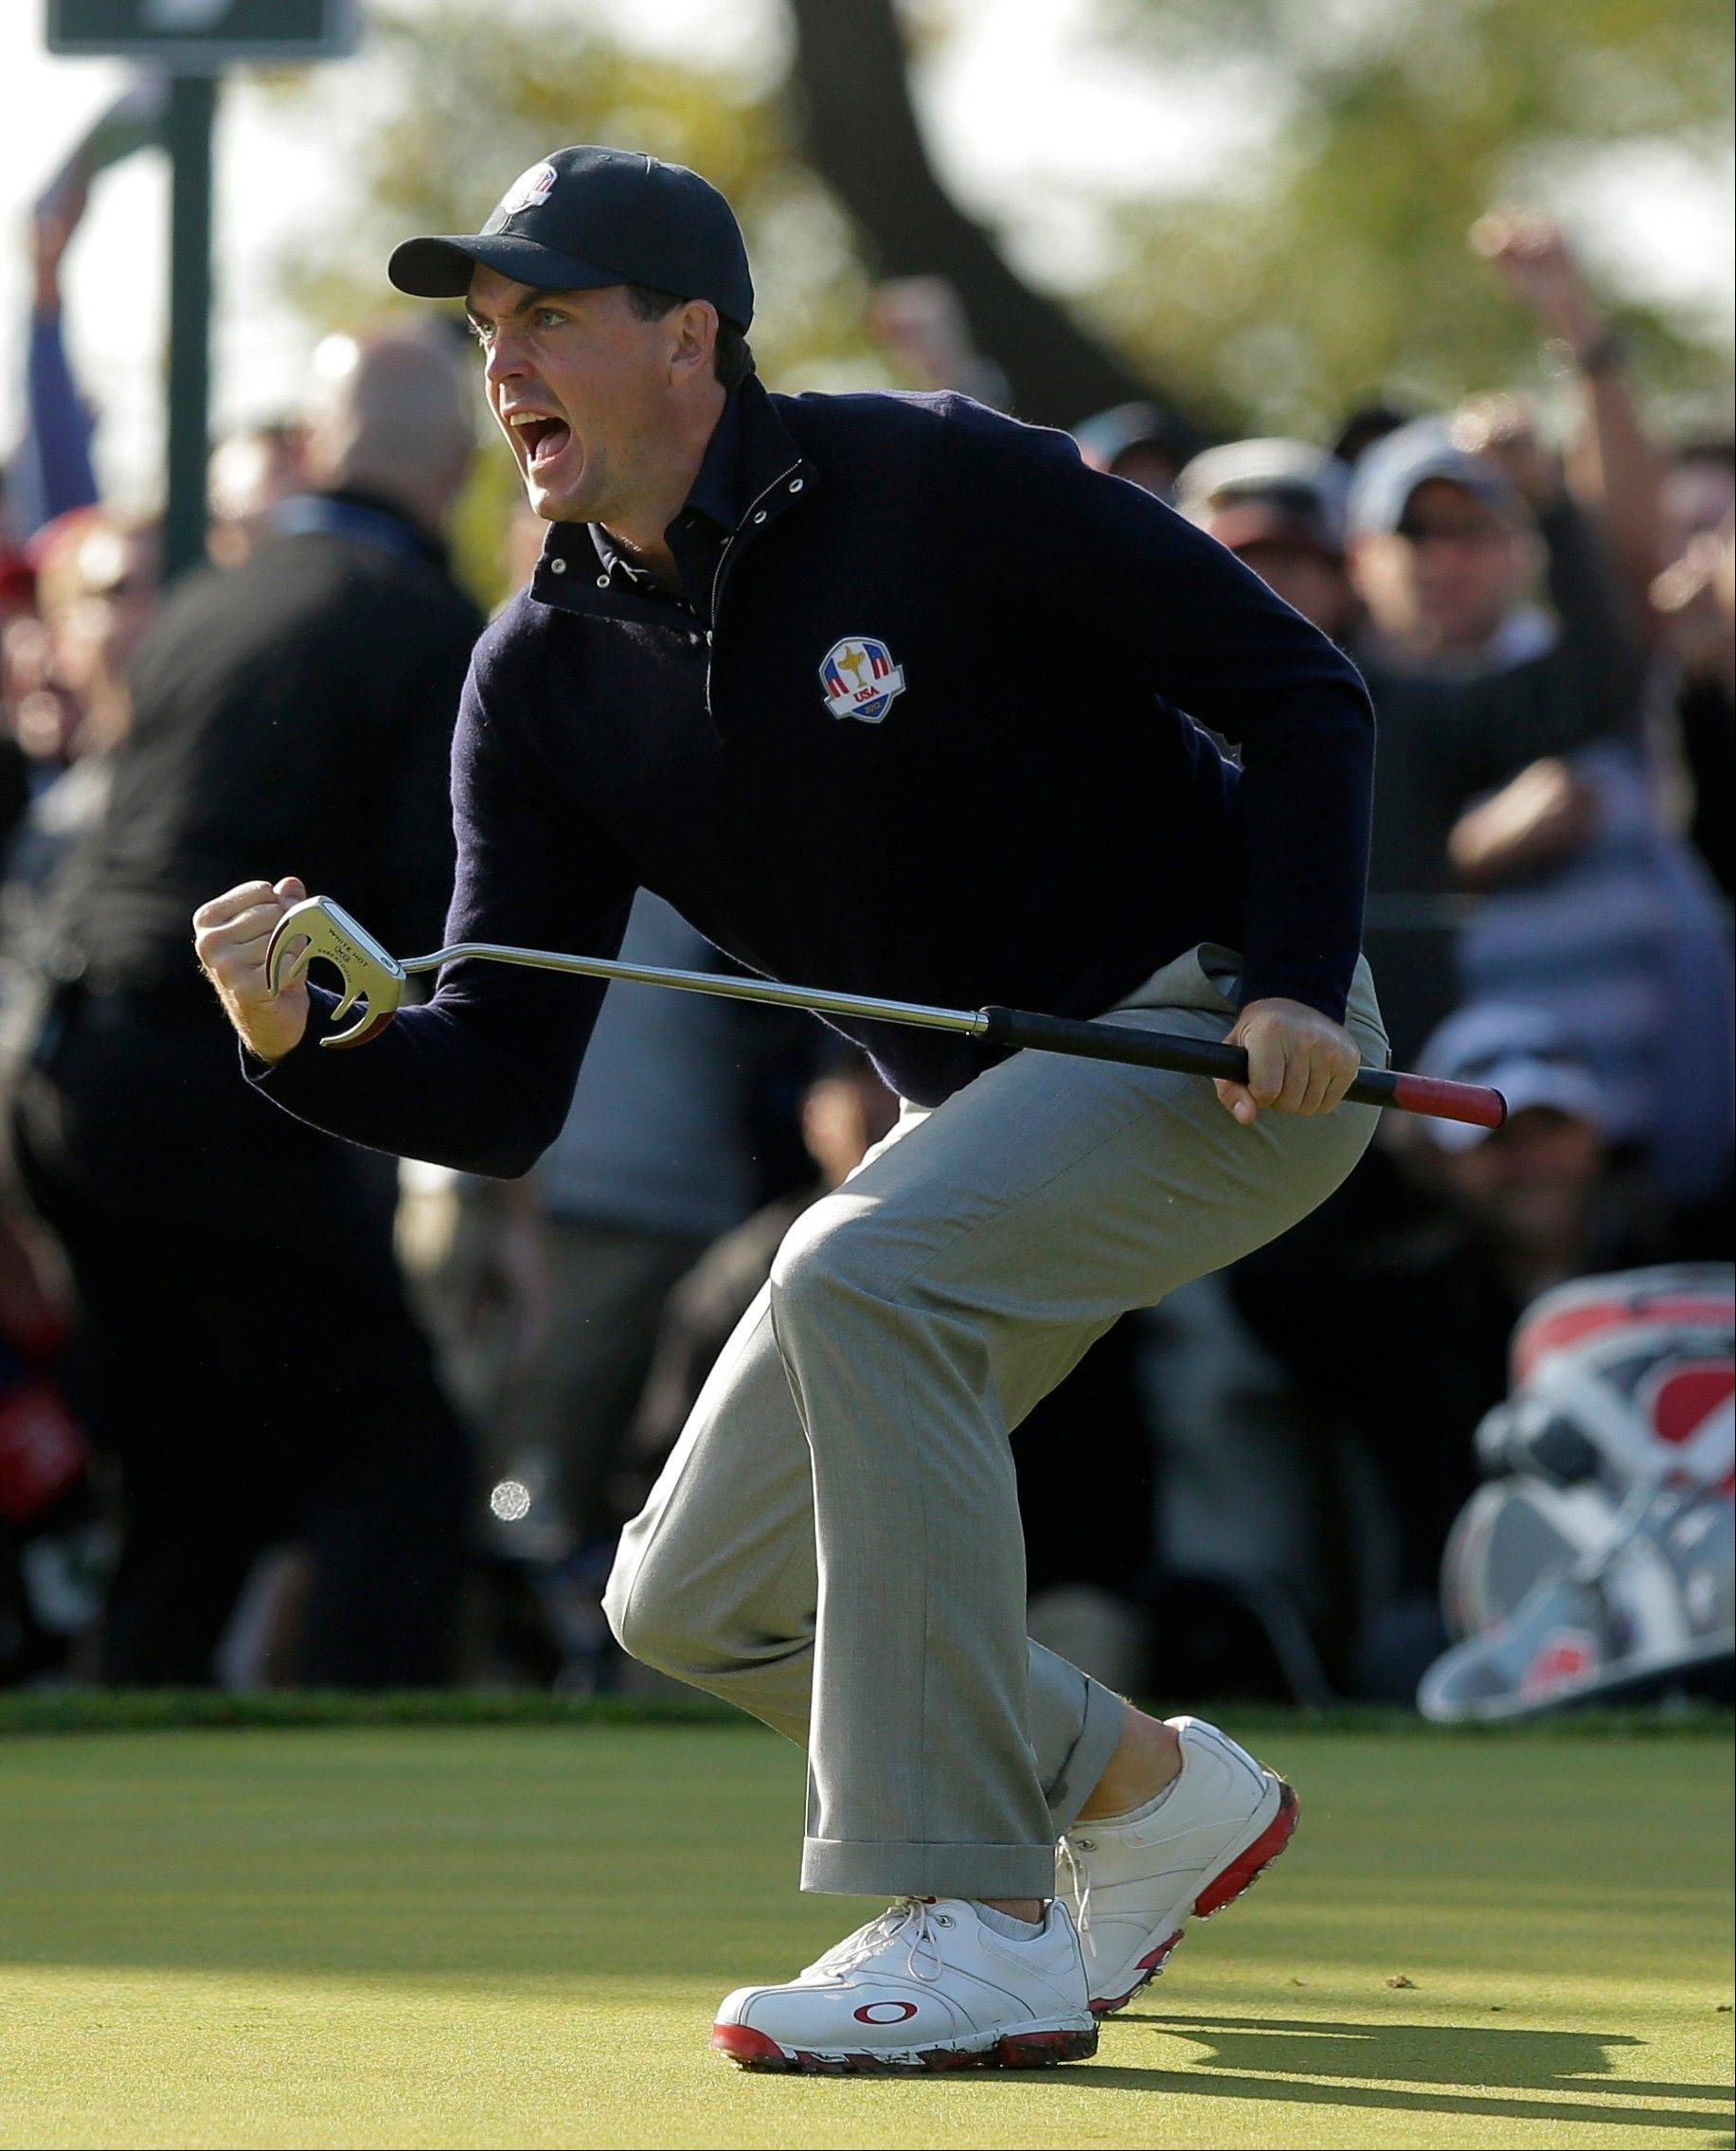 USA's Keegan Bradley reacts after making a putt on the ninth hole during a foursomes match at the Ryder Cup Saturday at Medinah Country Club. Bradley and Phil Mickelson led the charge as Team USA grabbed an 8-4 lead before the afternoon matches.